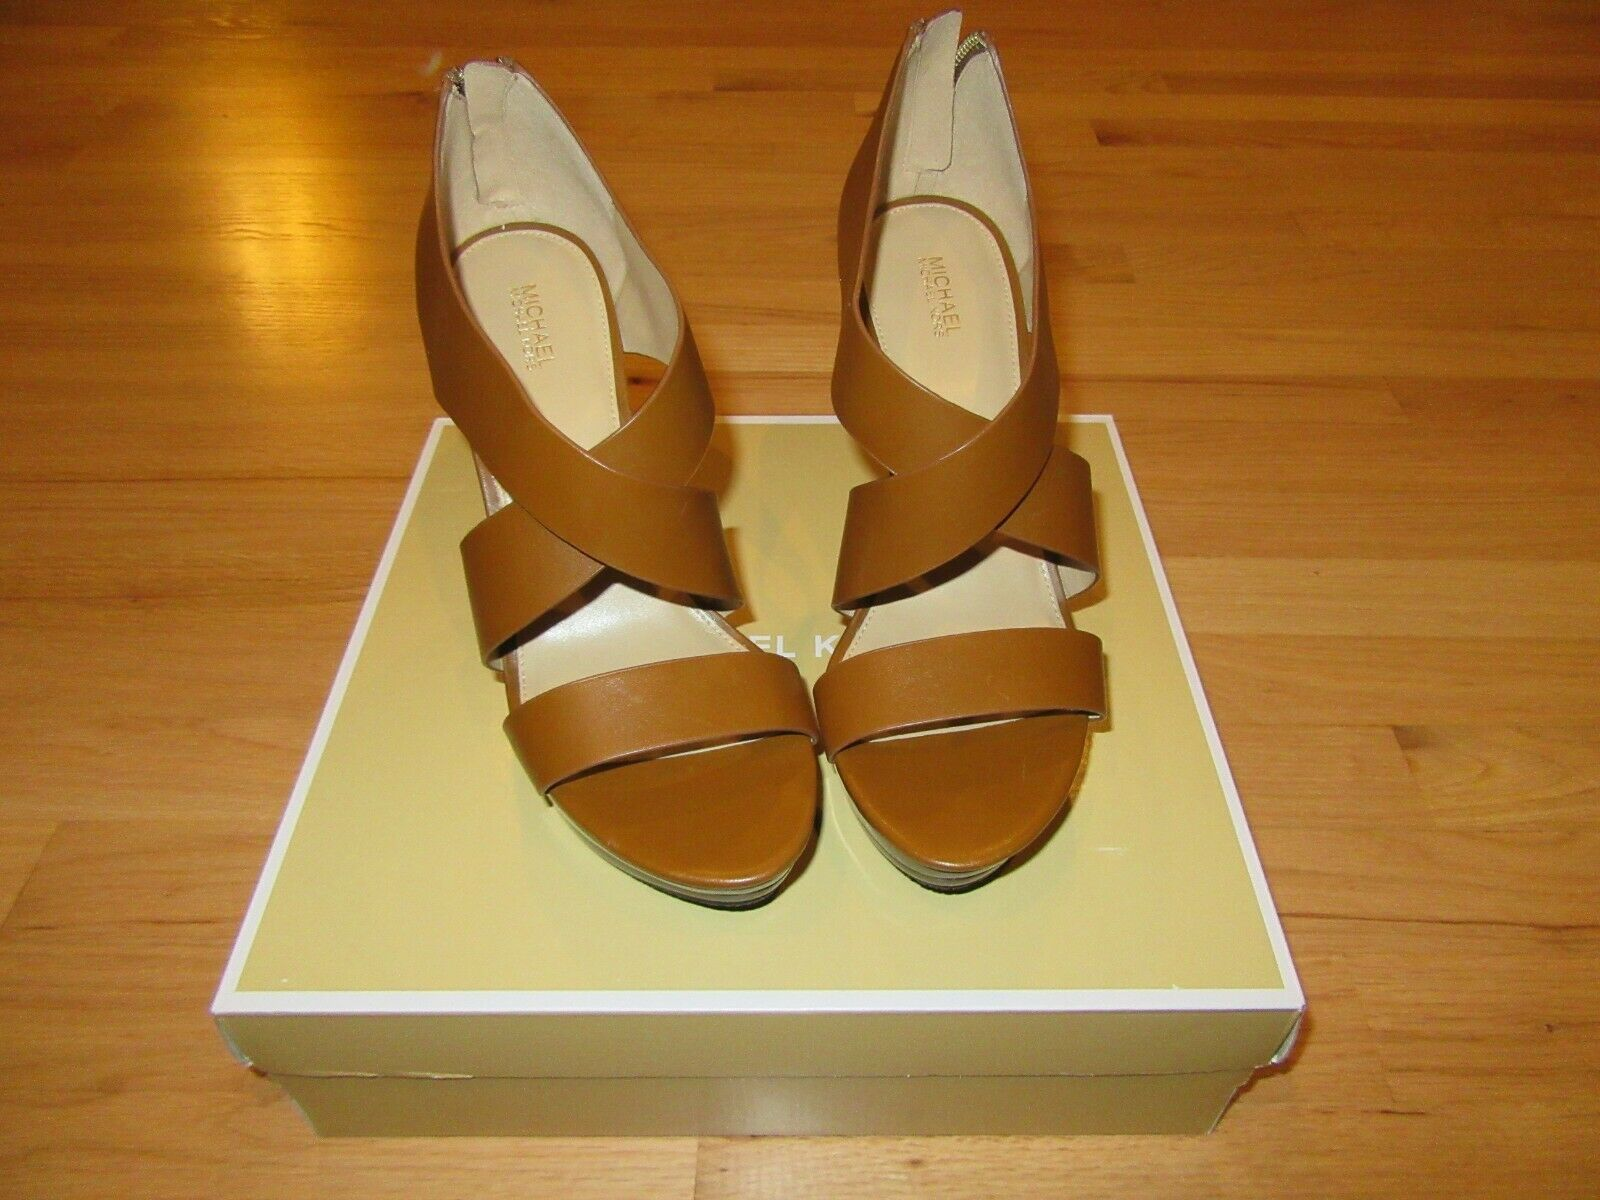 Primary image for 11P/NWT MICHAEL KORS ELENA PLATFORM HEELS/SHOES/BROWN/LEATHER/SIZE 9M/BOX!